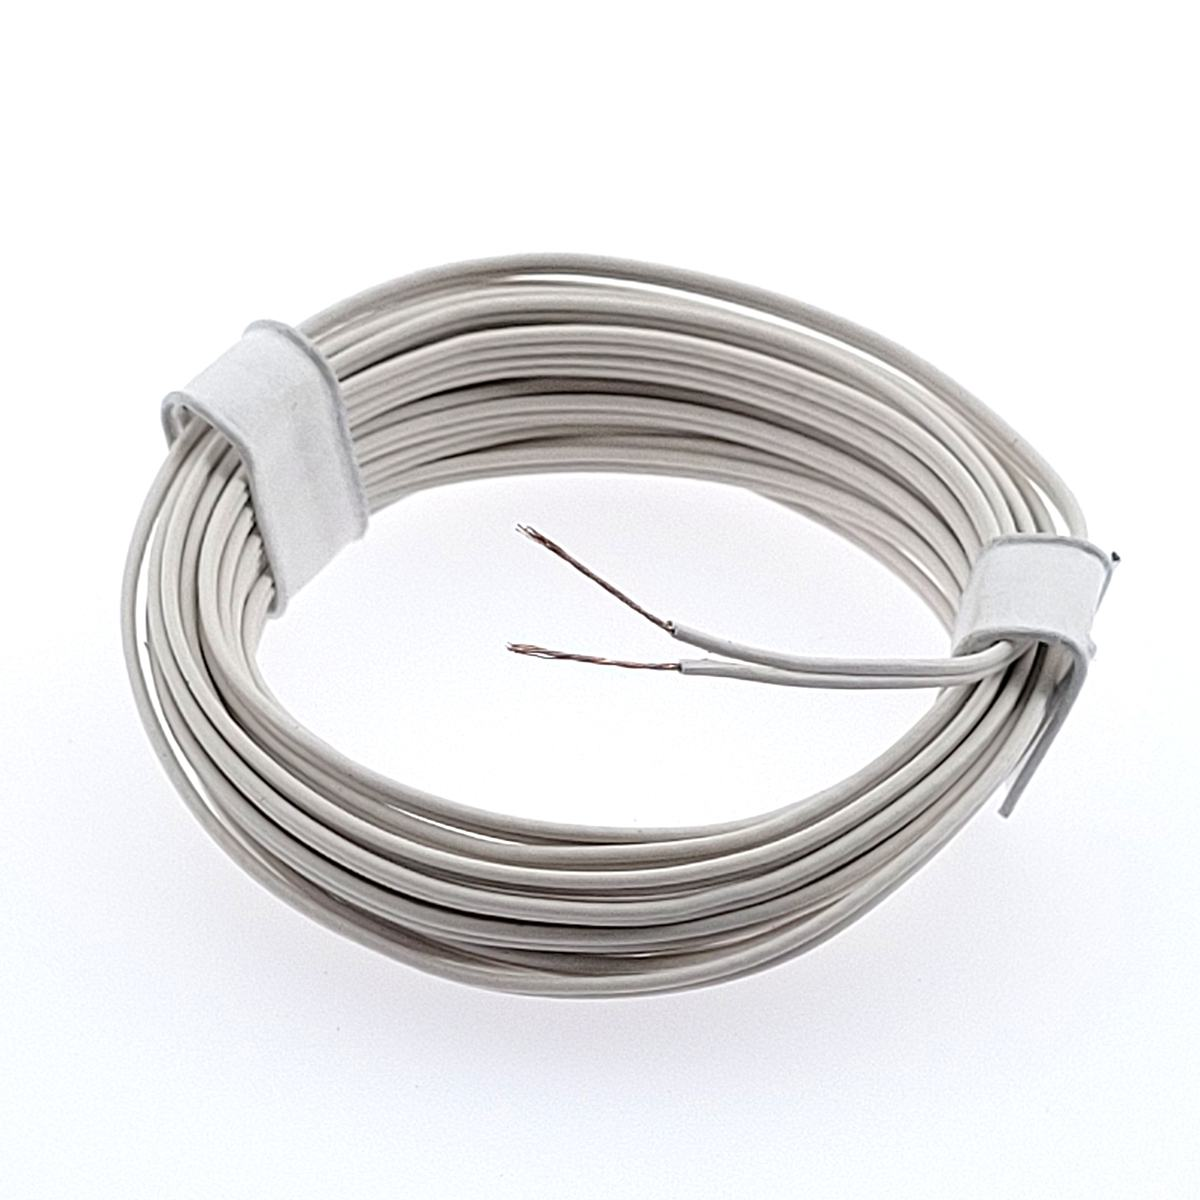 Lamp cables